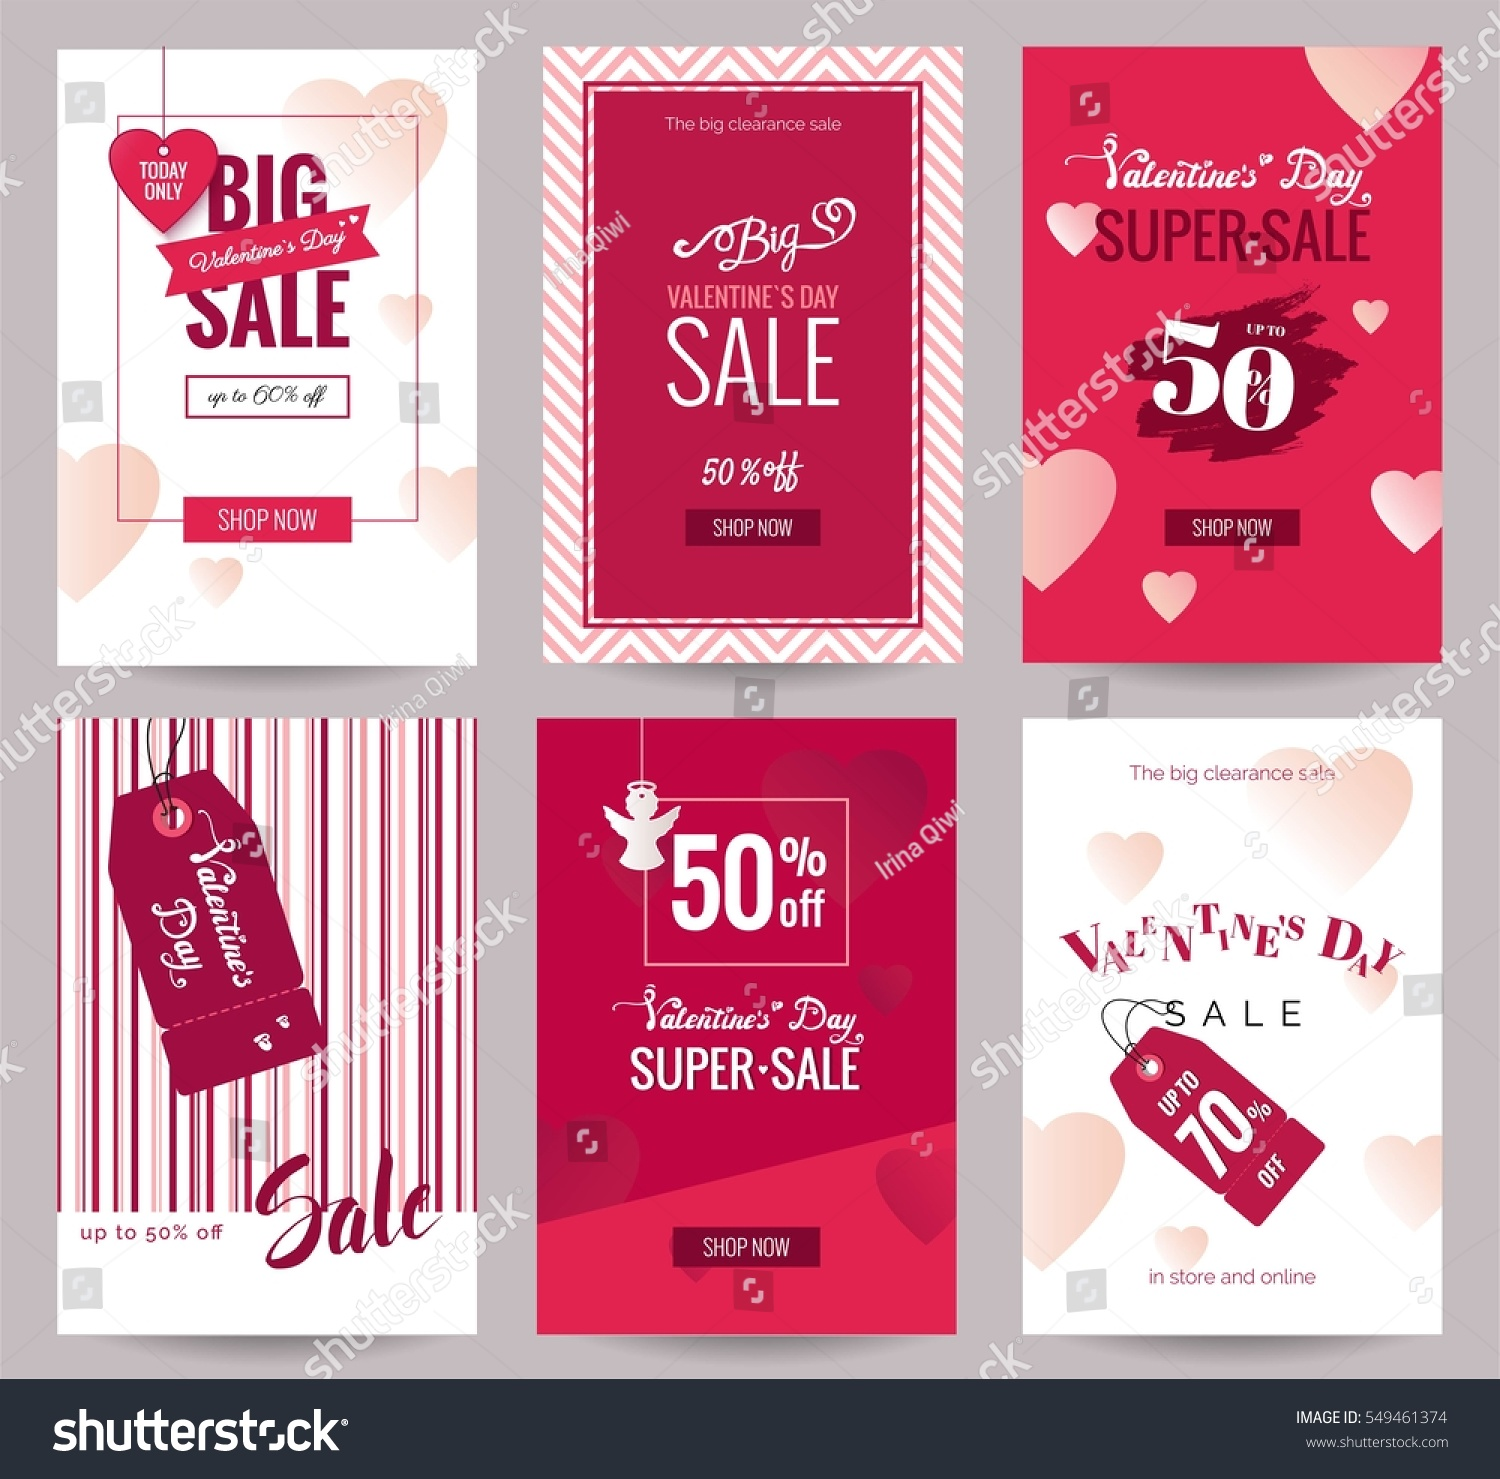 Collection Valentines Day Sale Flyer Templates Vector – Sale Flyer Templates